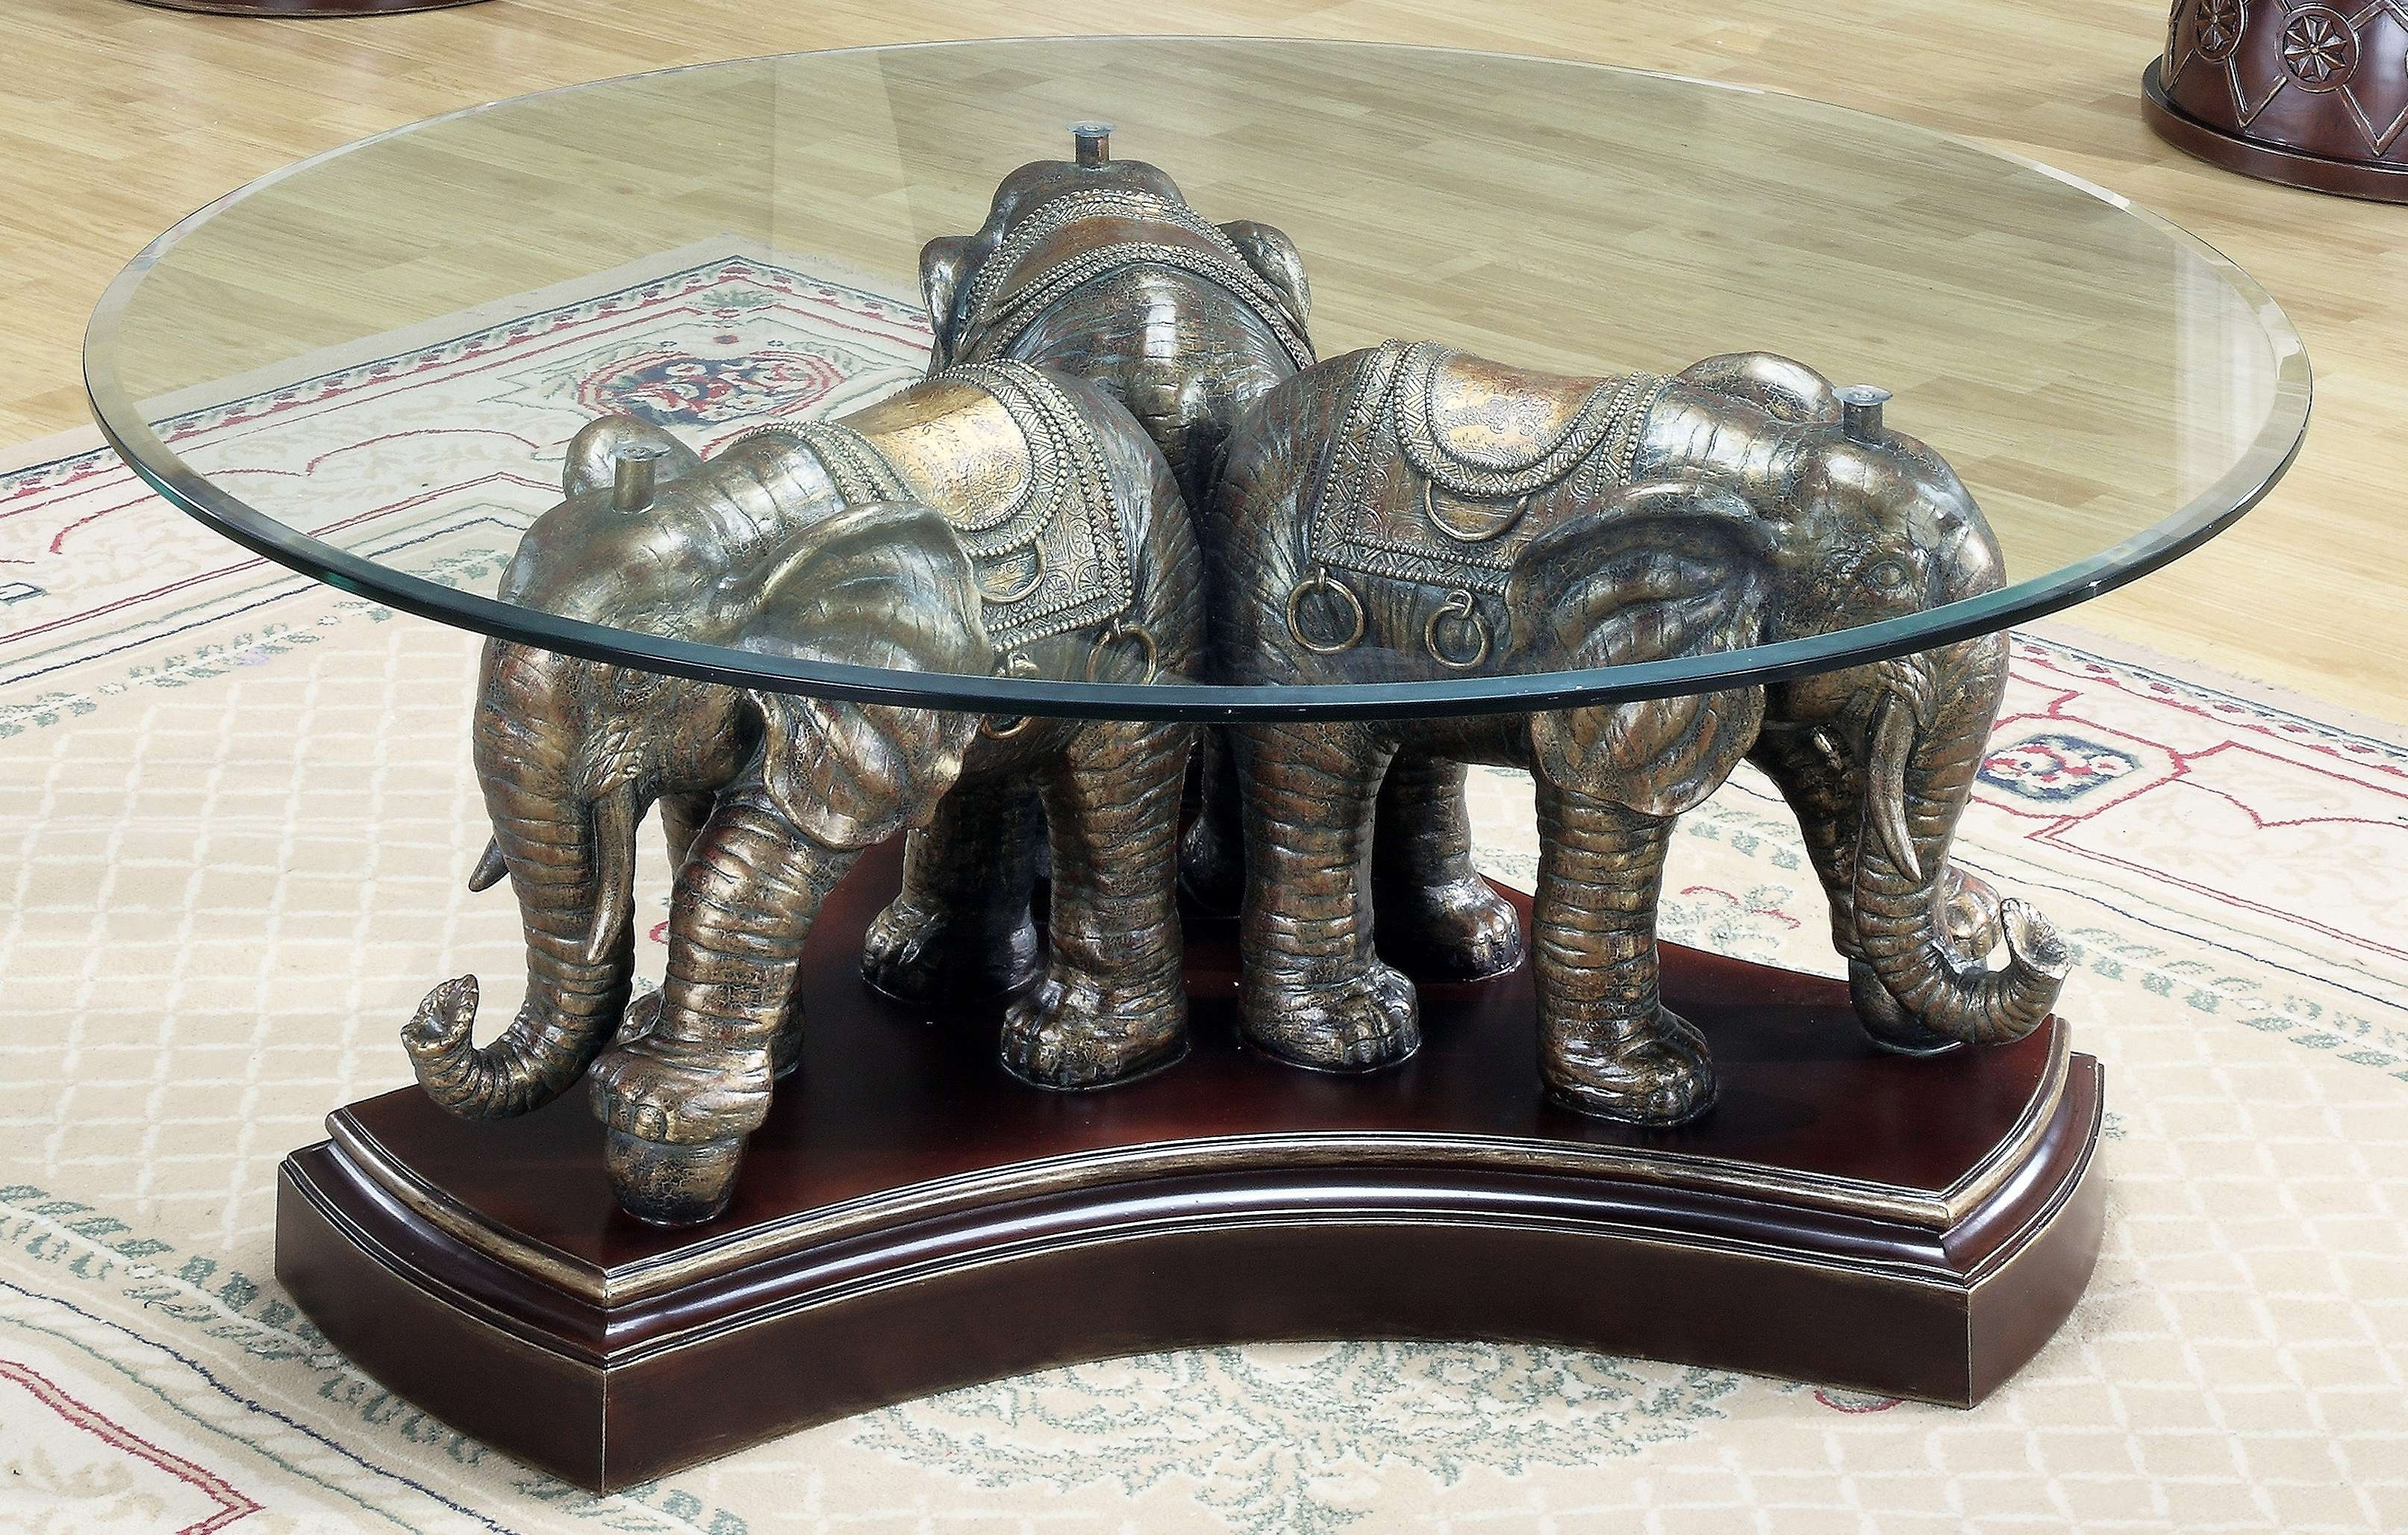 2017 Elephant Coffee Tables With Glass Top Regarding Elephant Coffee Table Glass Top – Coffeetable (View 2 of 20)